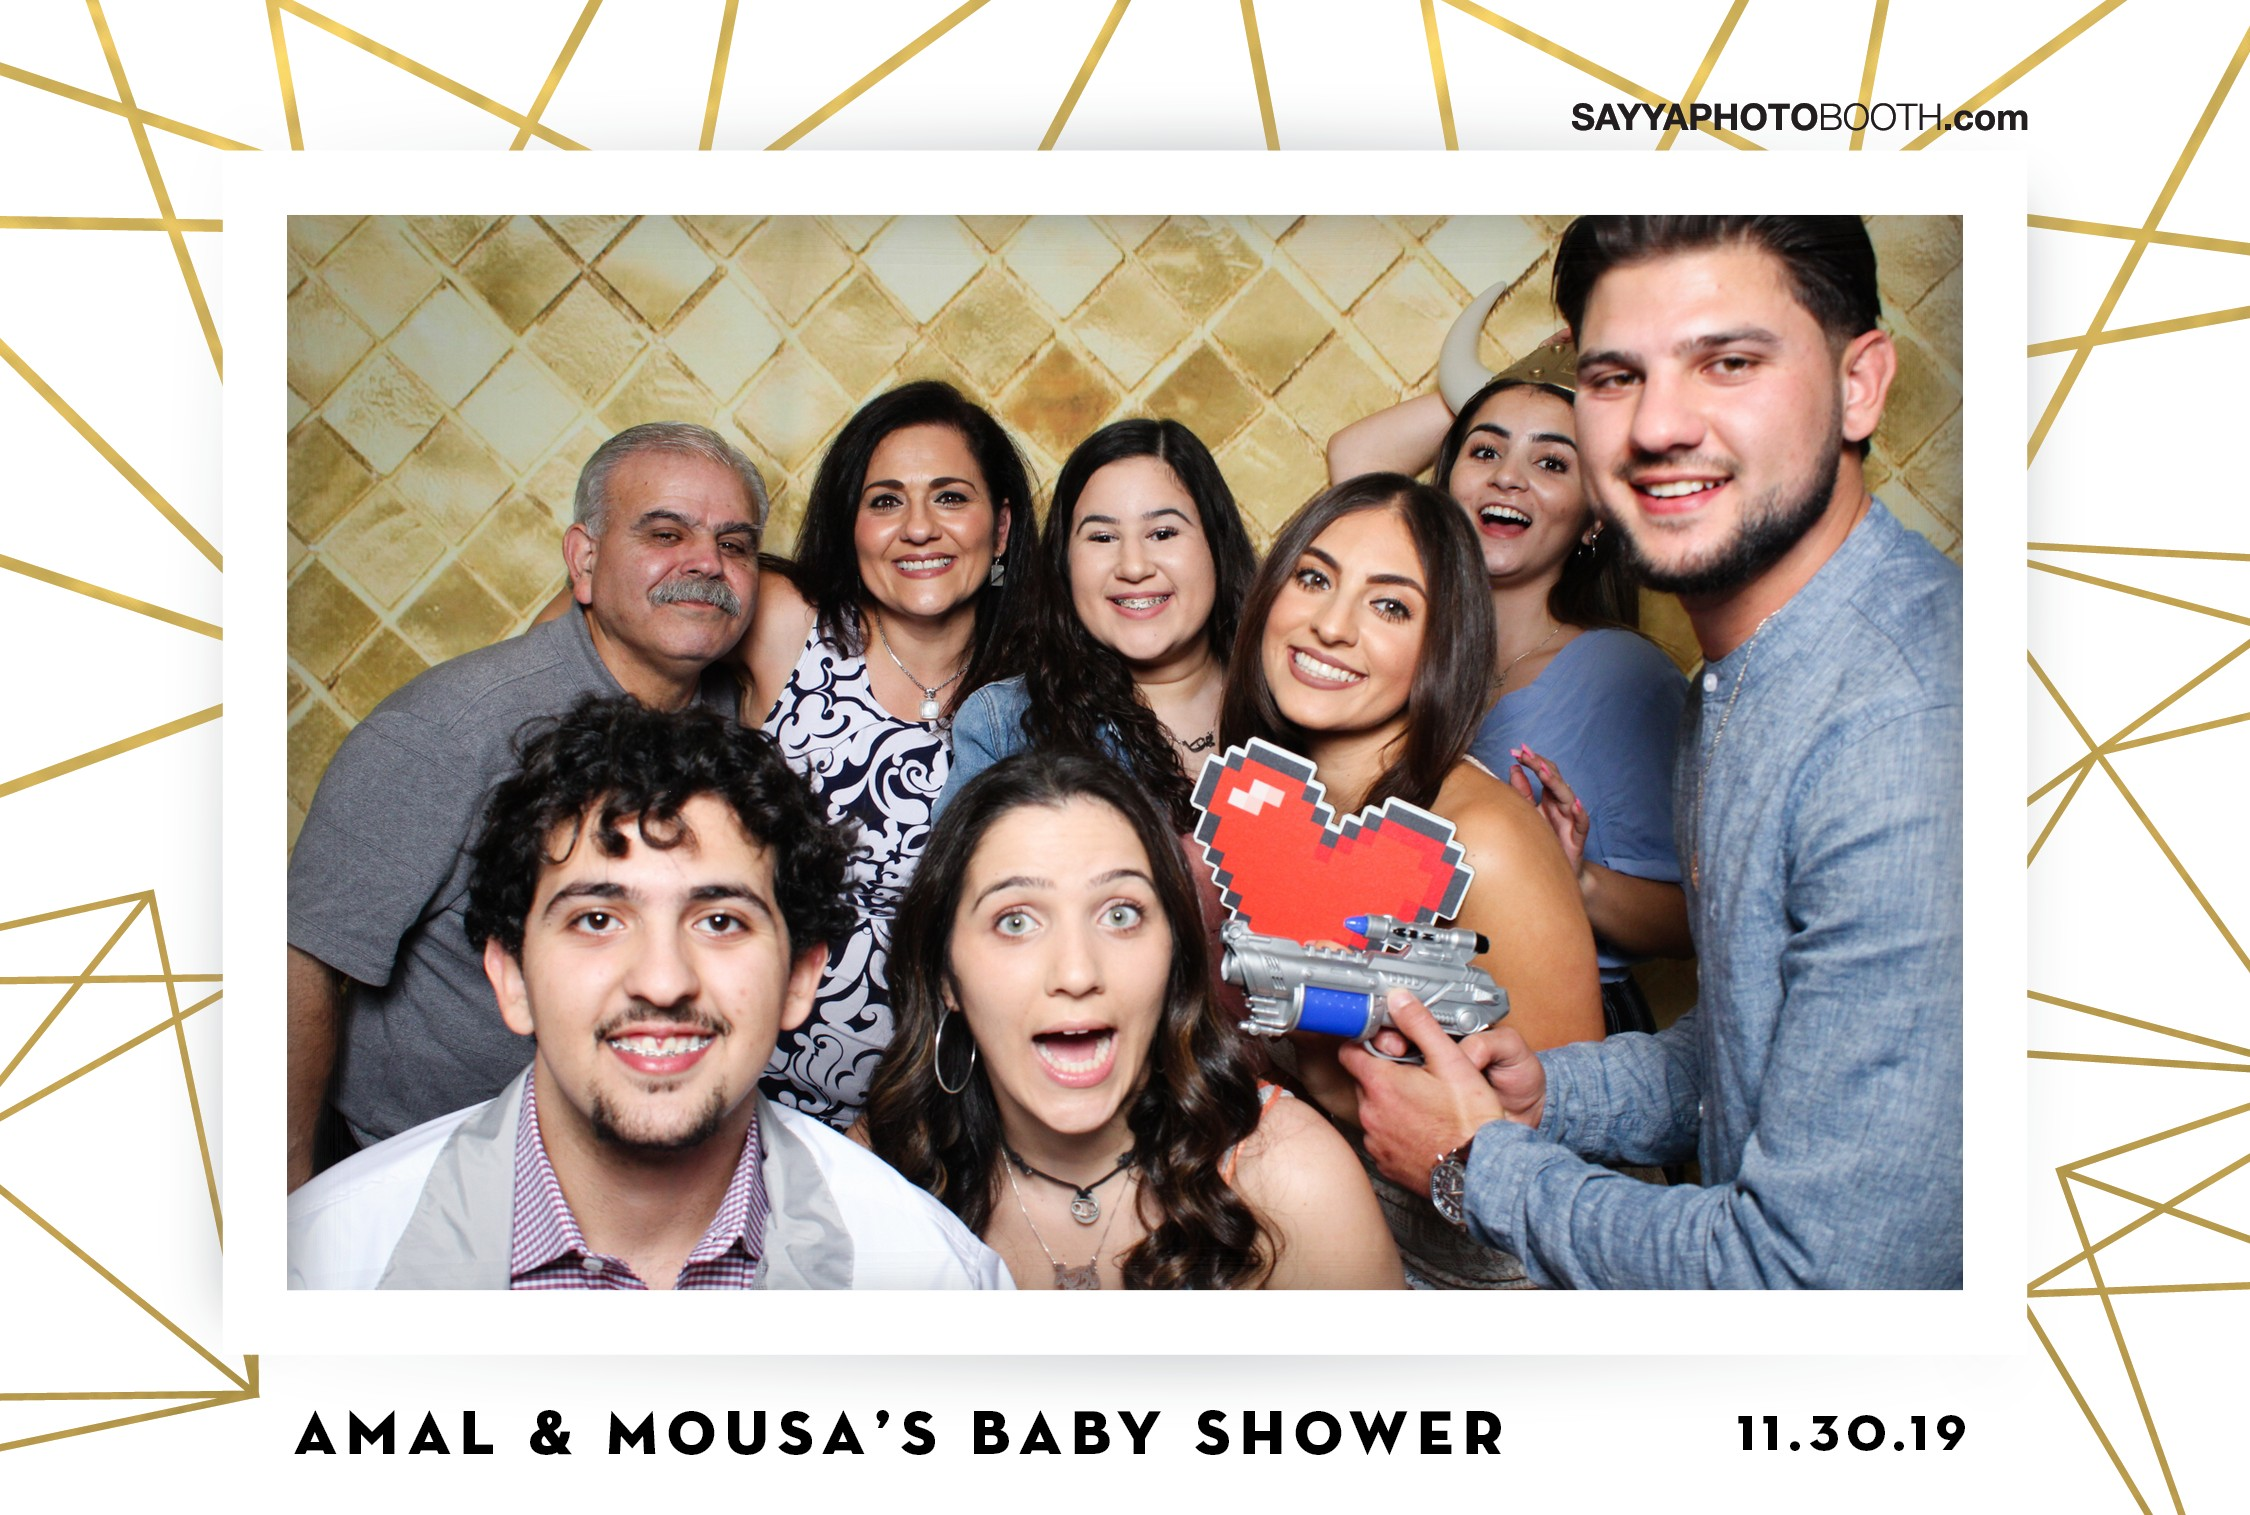 Amal's Baby Shower